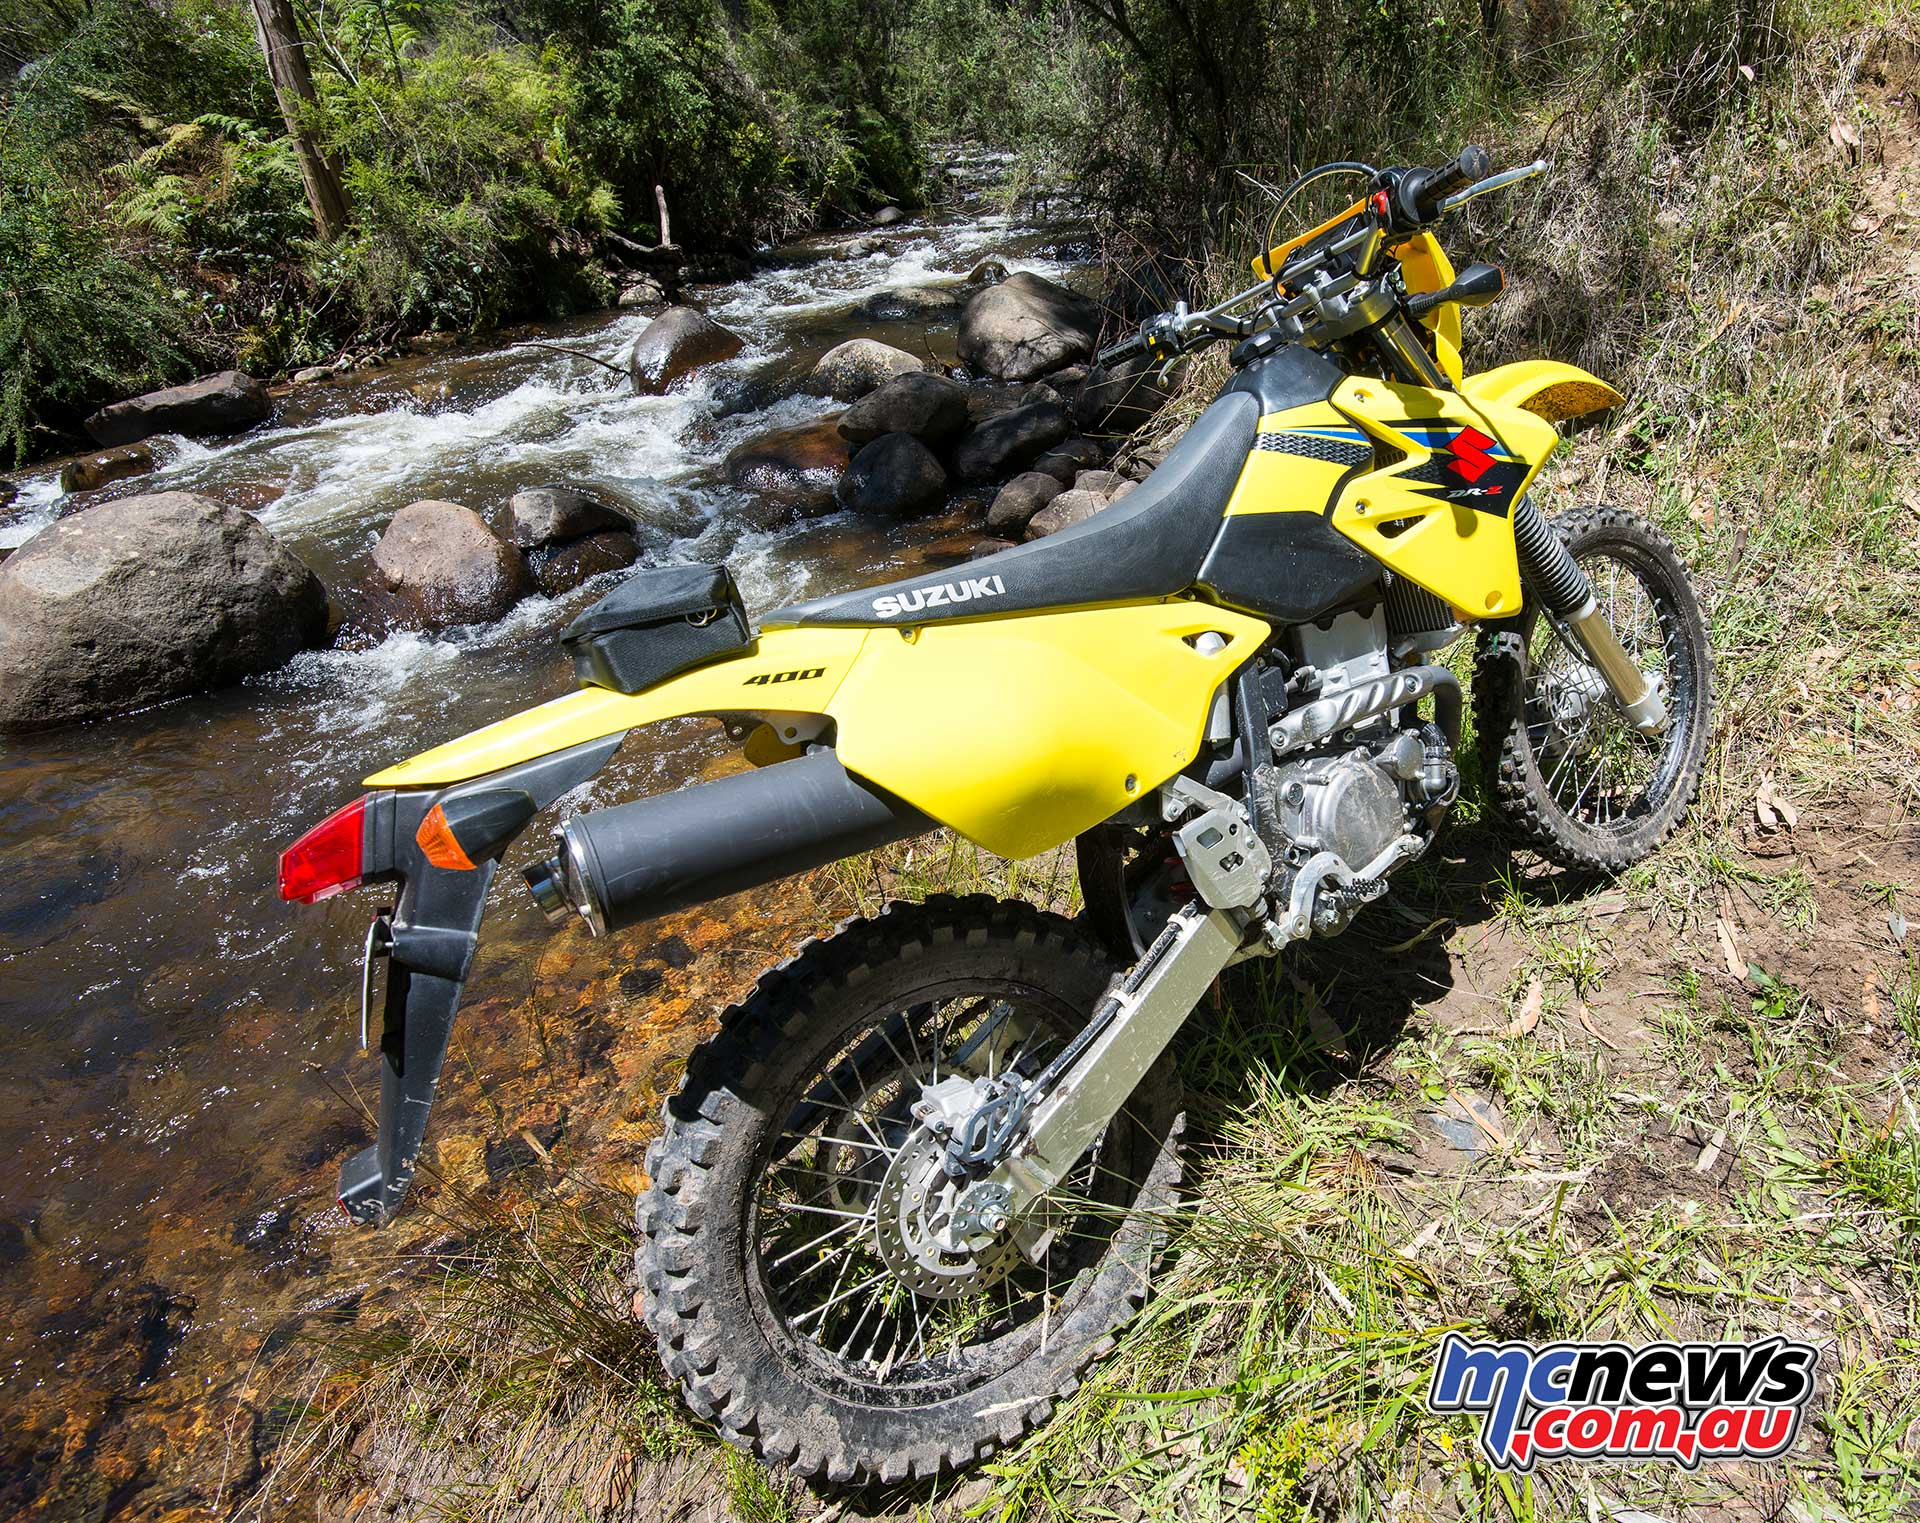 Outstanding Suzuki Dr Z400E Review Motorcycle Tests Mcnews Com Au Gmtry Best Dining Table And Chair Ideas Images Gmtryco